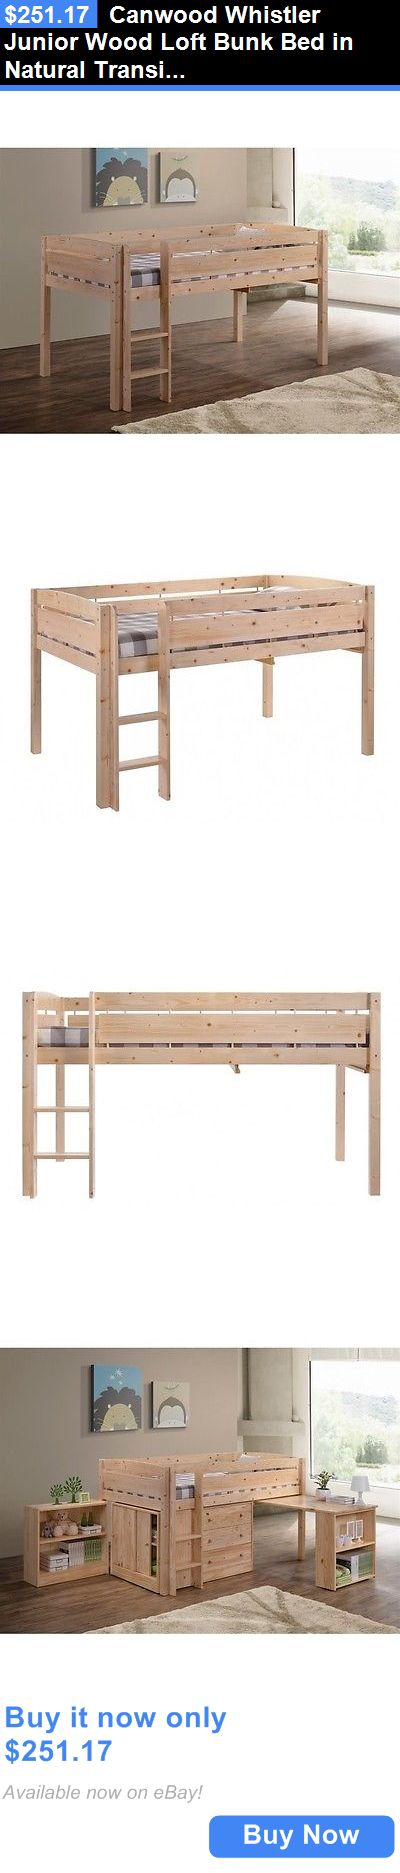 Kids Furniture: Canwood Whistler Junior Wood Loft Bunk Bed In Natural Transitional Kids BUY IT NOW ONLY: $251.17